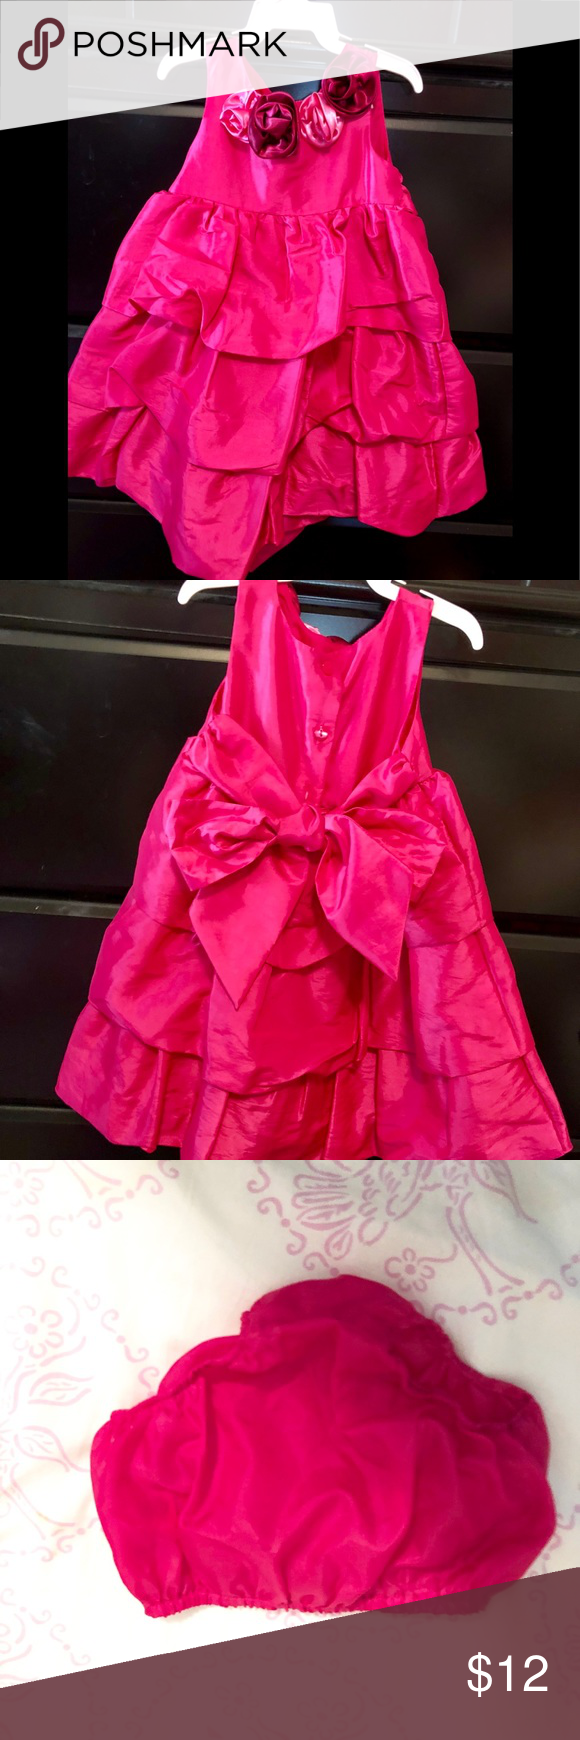 54f64a2dc Hot pink ruffled dress for infants 18 mos 18 months Hot pink dress ...